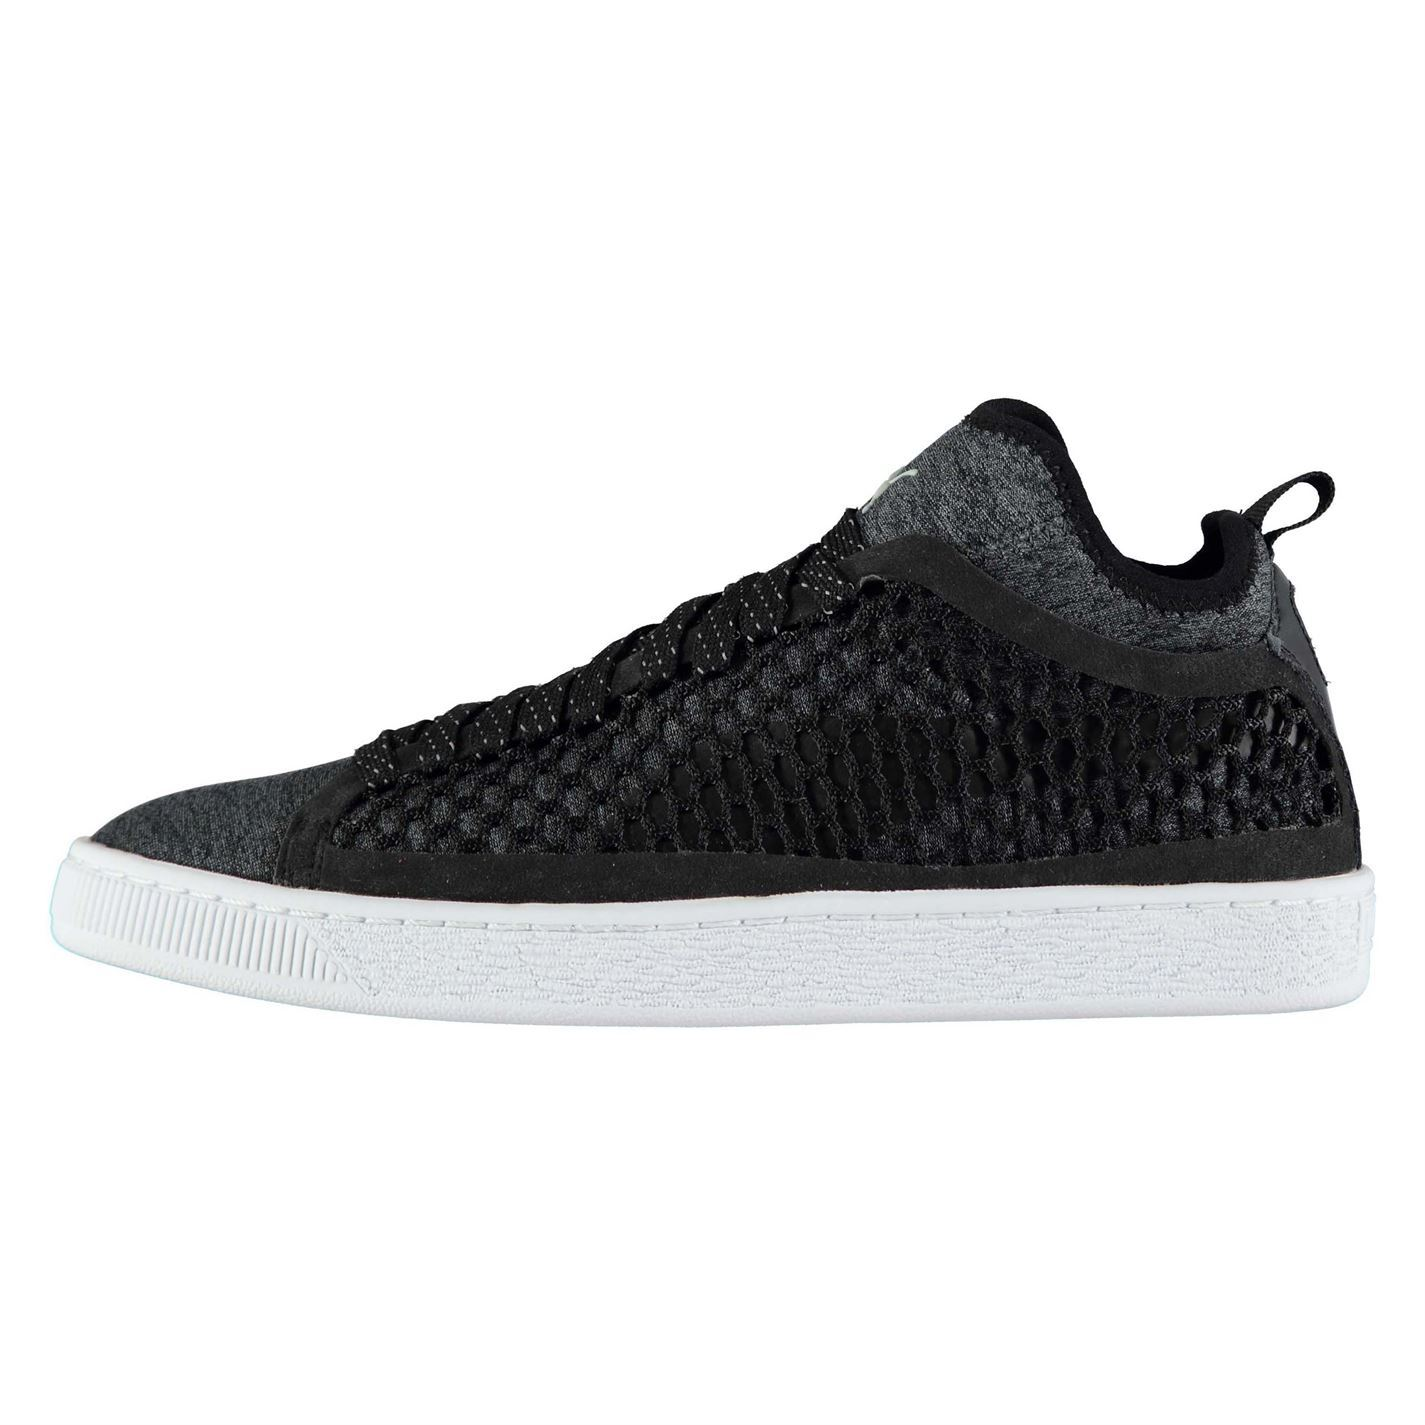 promozioni Athleisure Uomo Trainers Mid Hoops Adidas